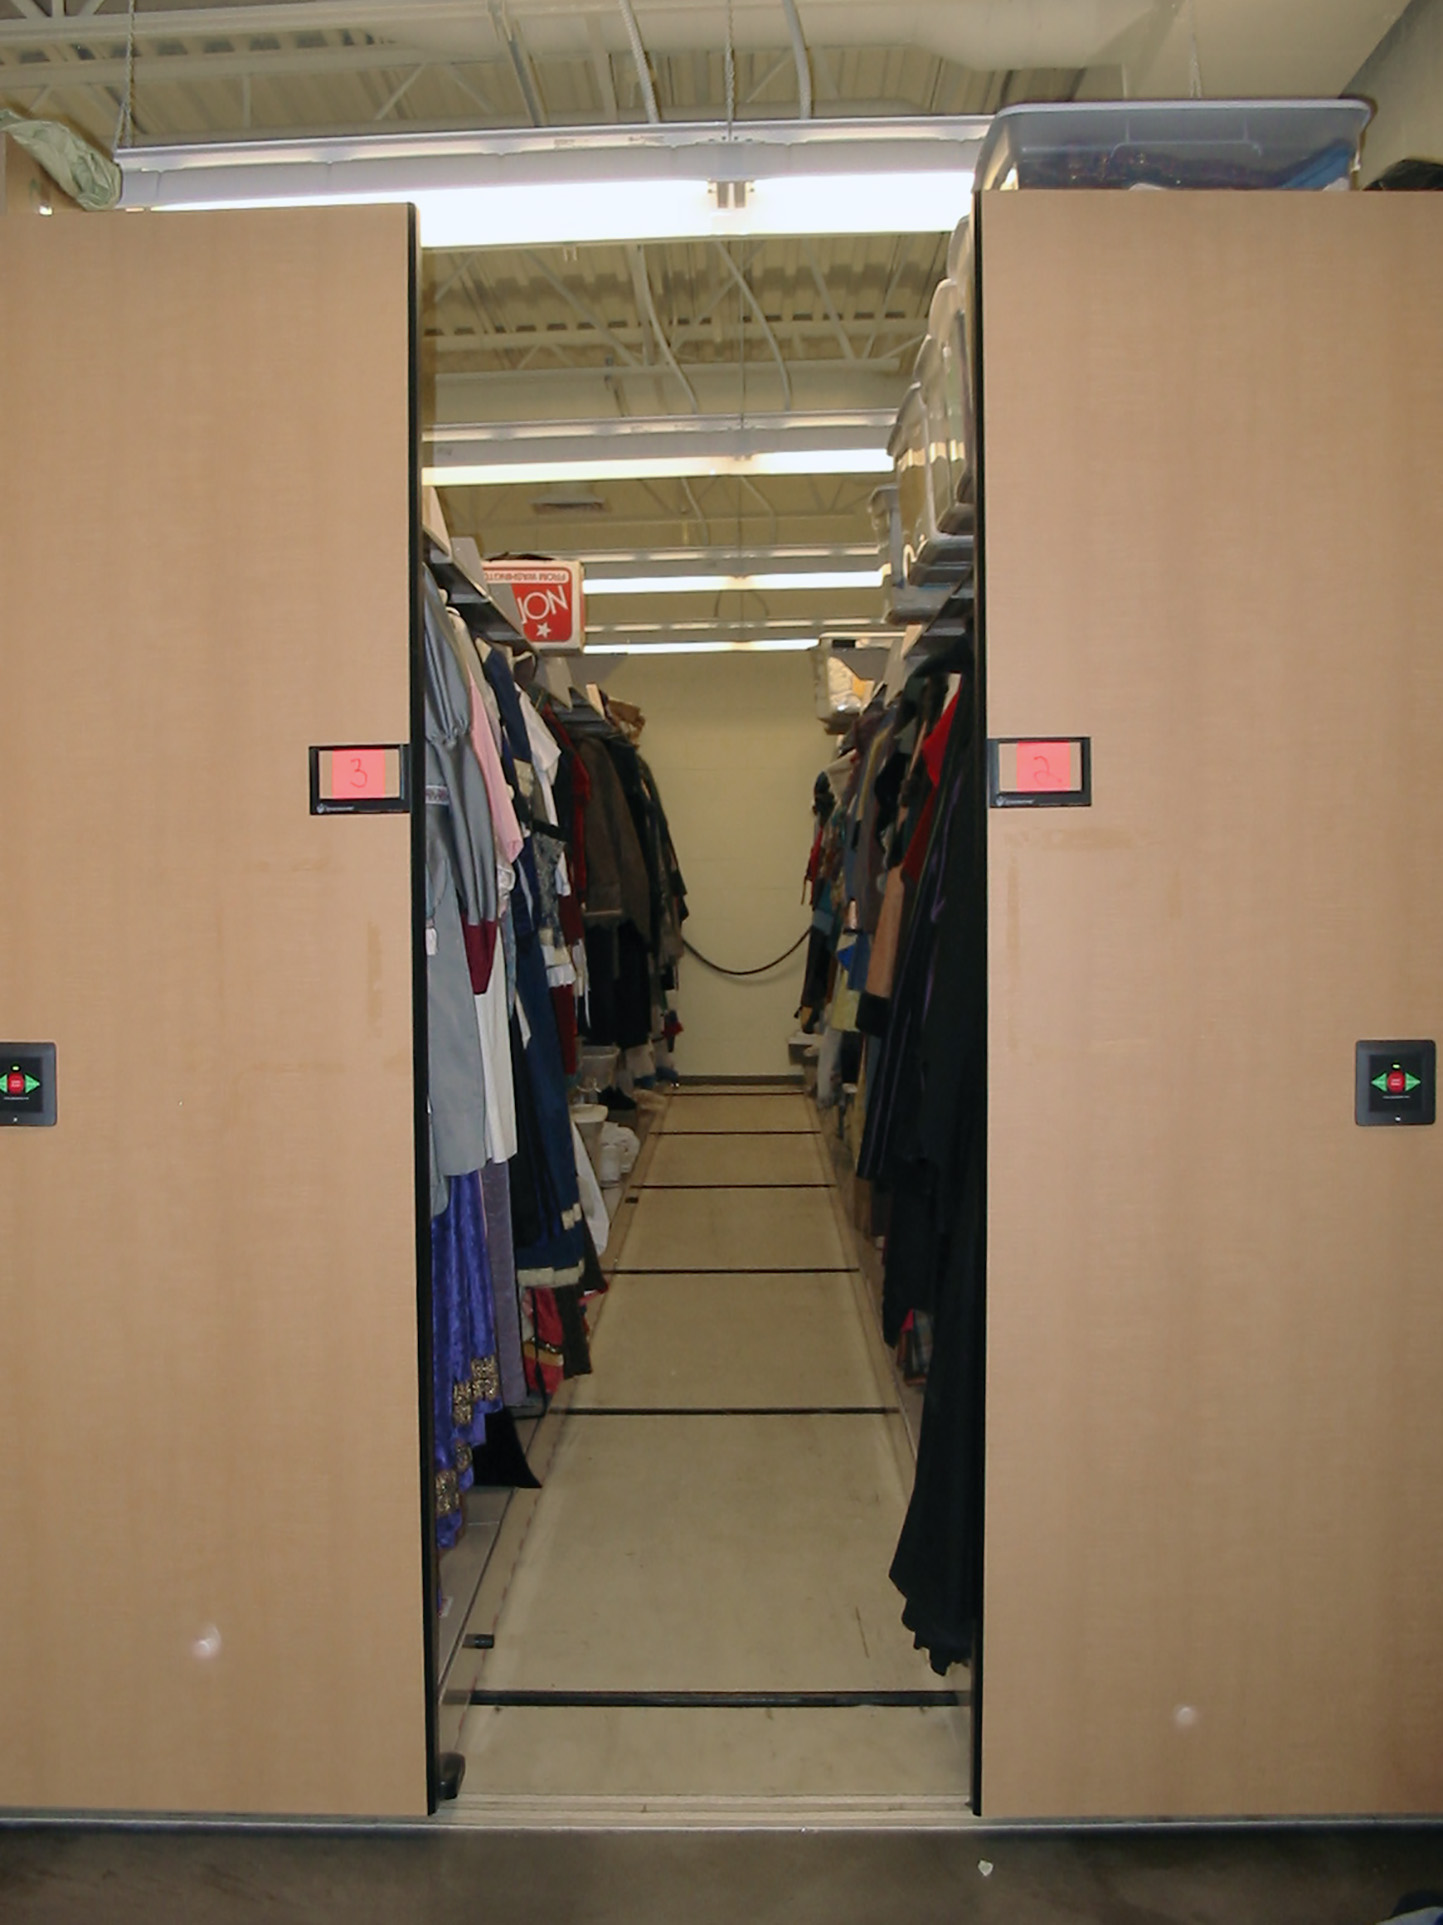 Powered compact mobile storage for costumes and props at Brigham Young University Performing Arts Center